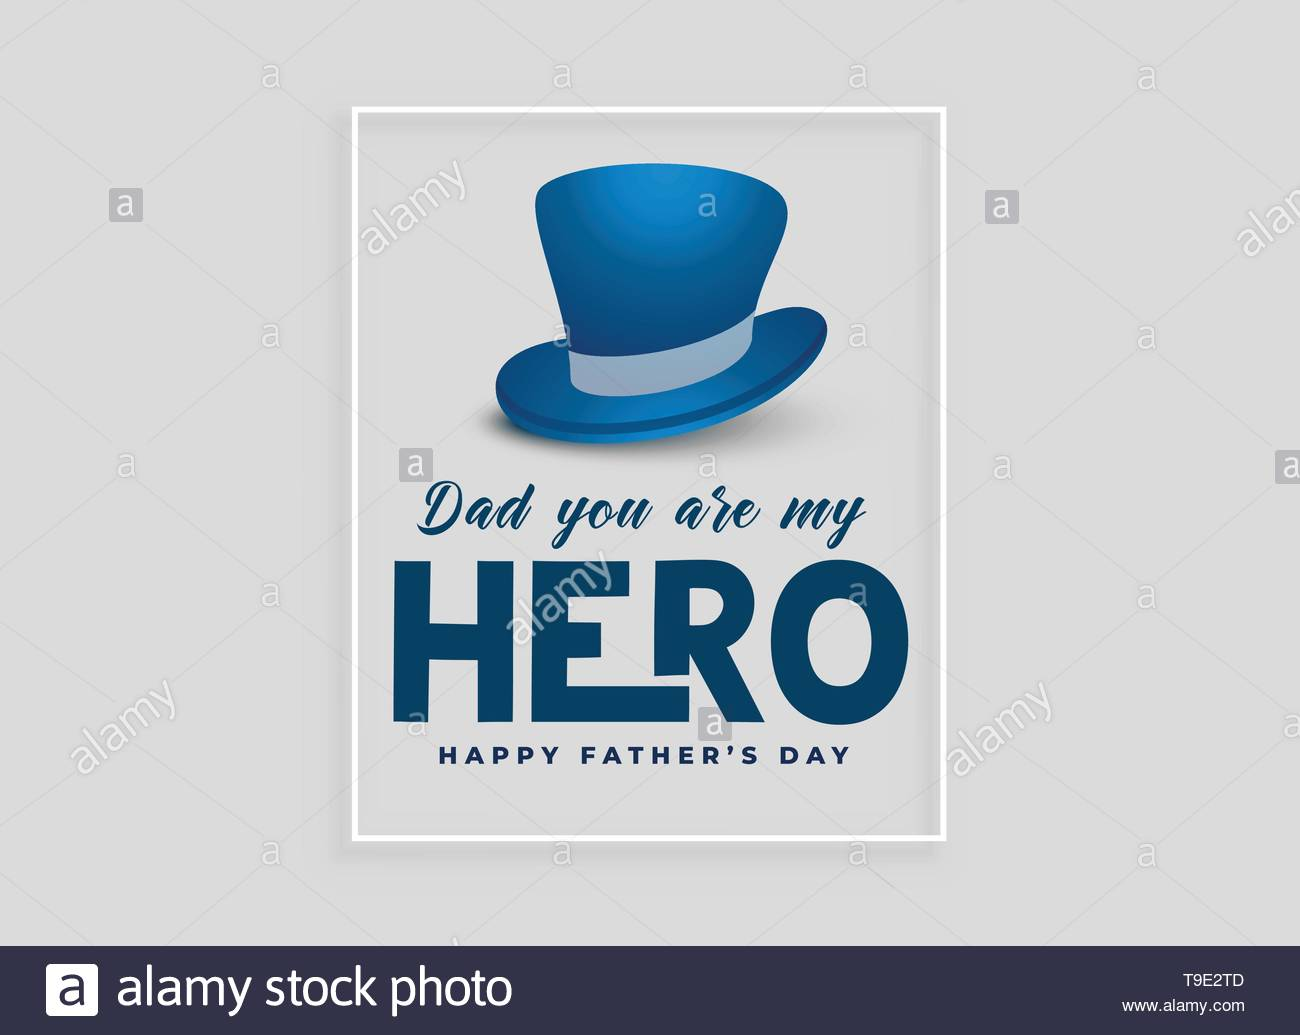 happy fathers day card design with hat - Stock Image